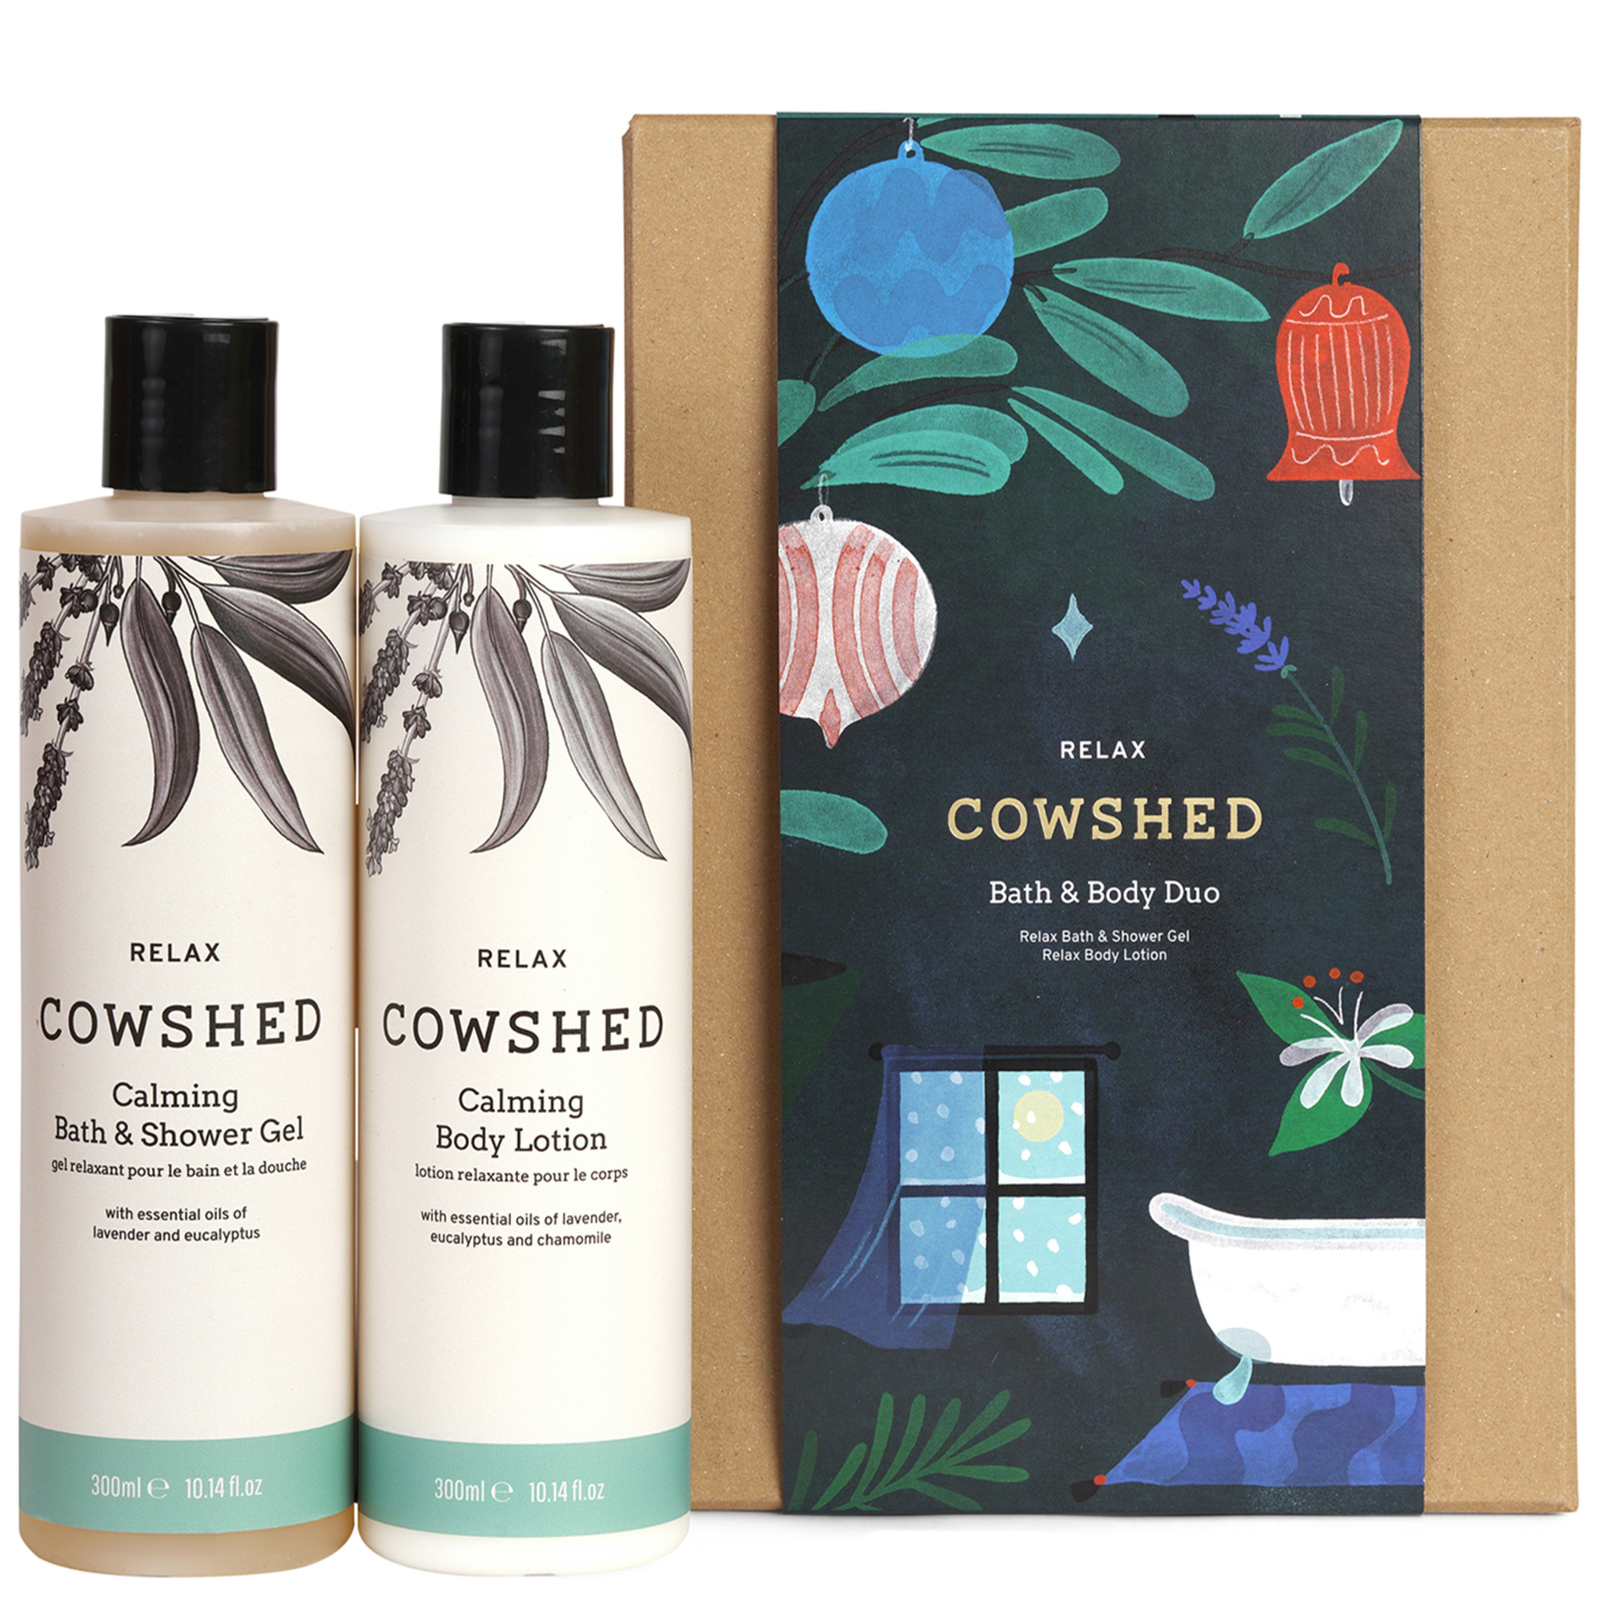 Cowshed Christmas 2020 Relax Bath & Body Duo